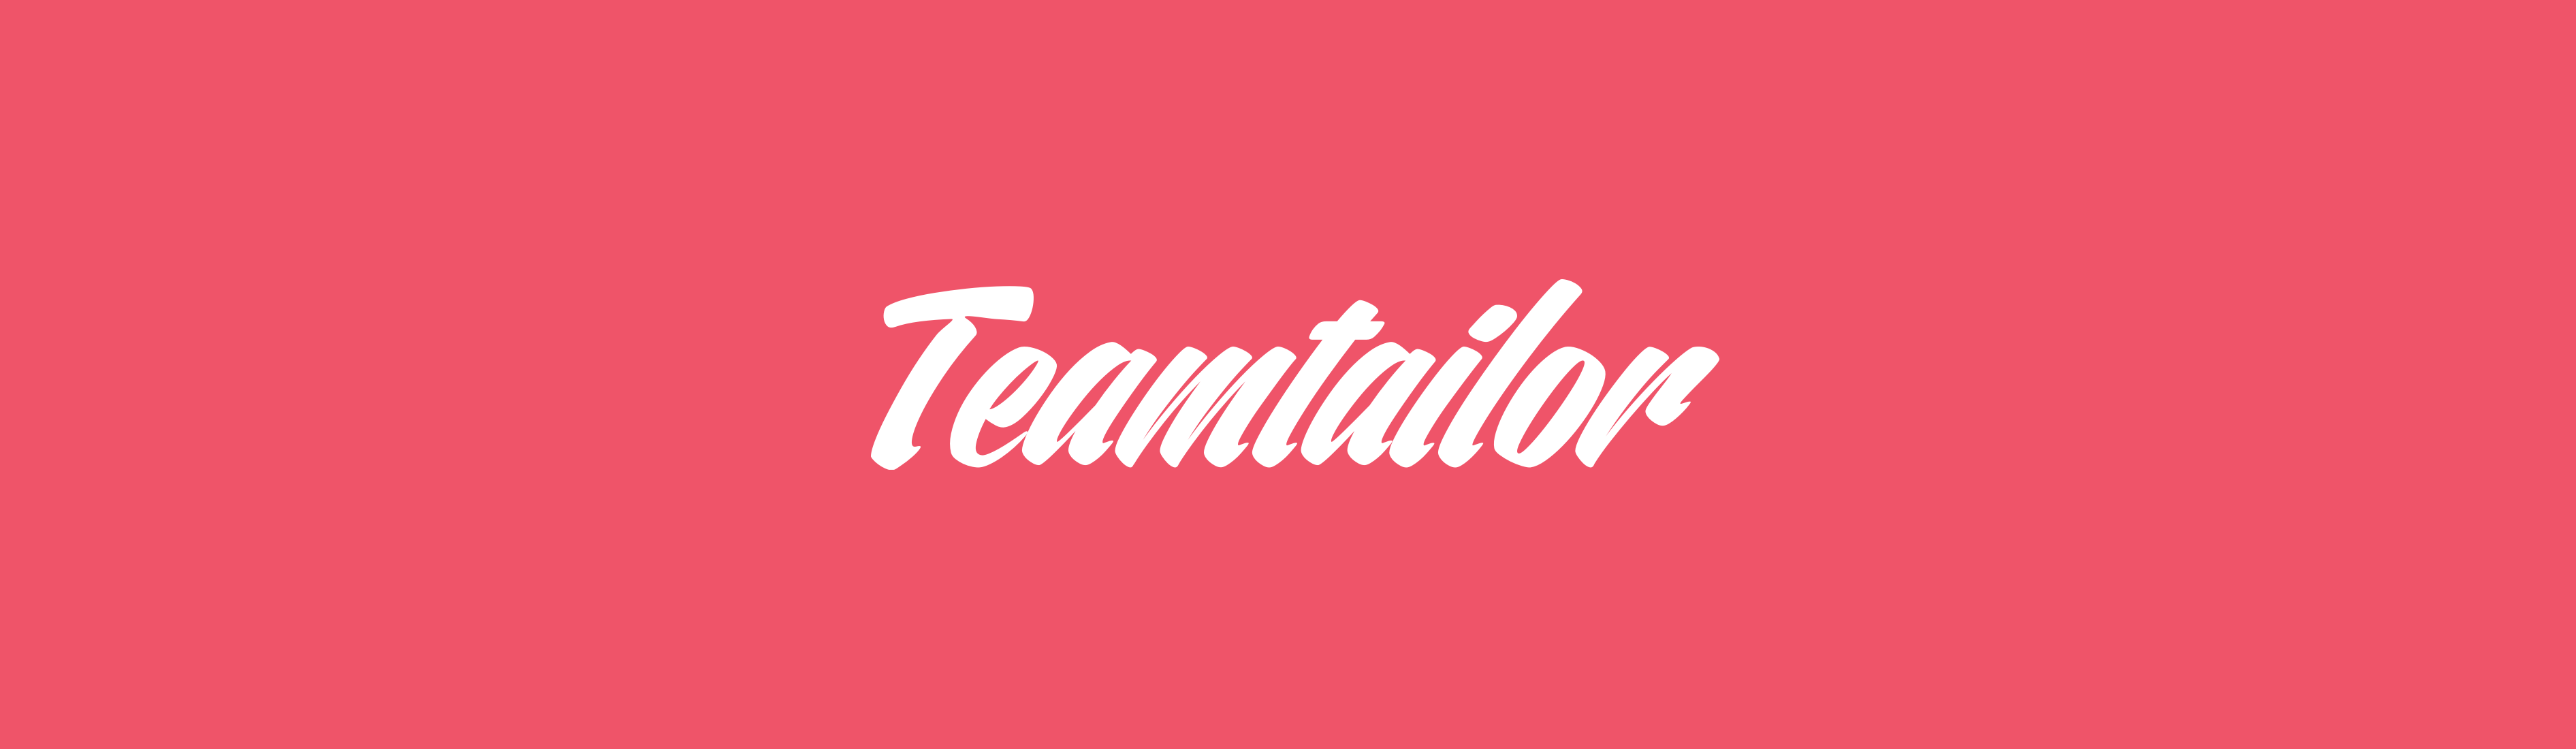 teamtailor-header1.png